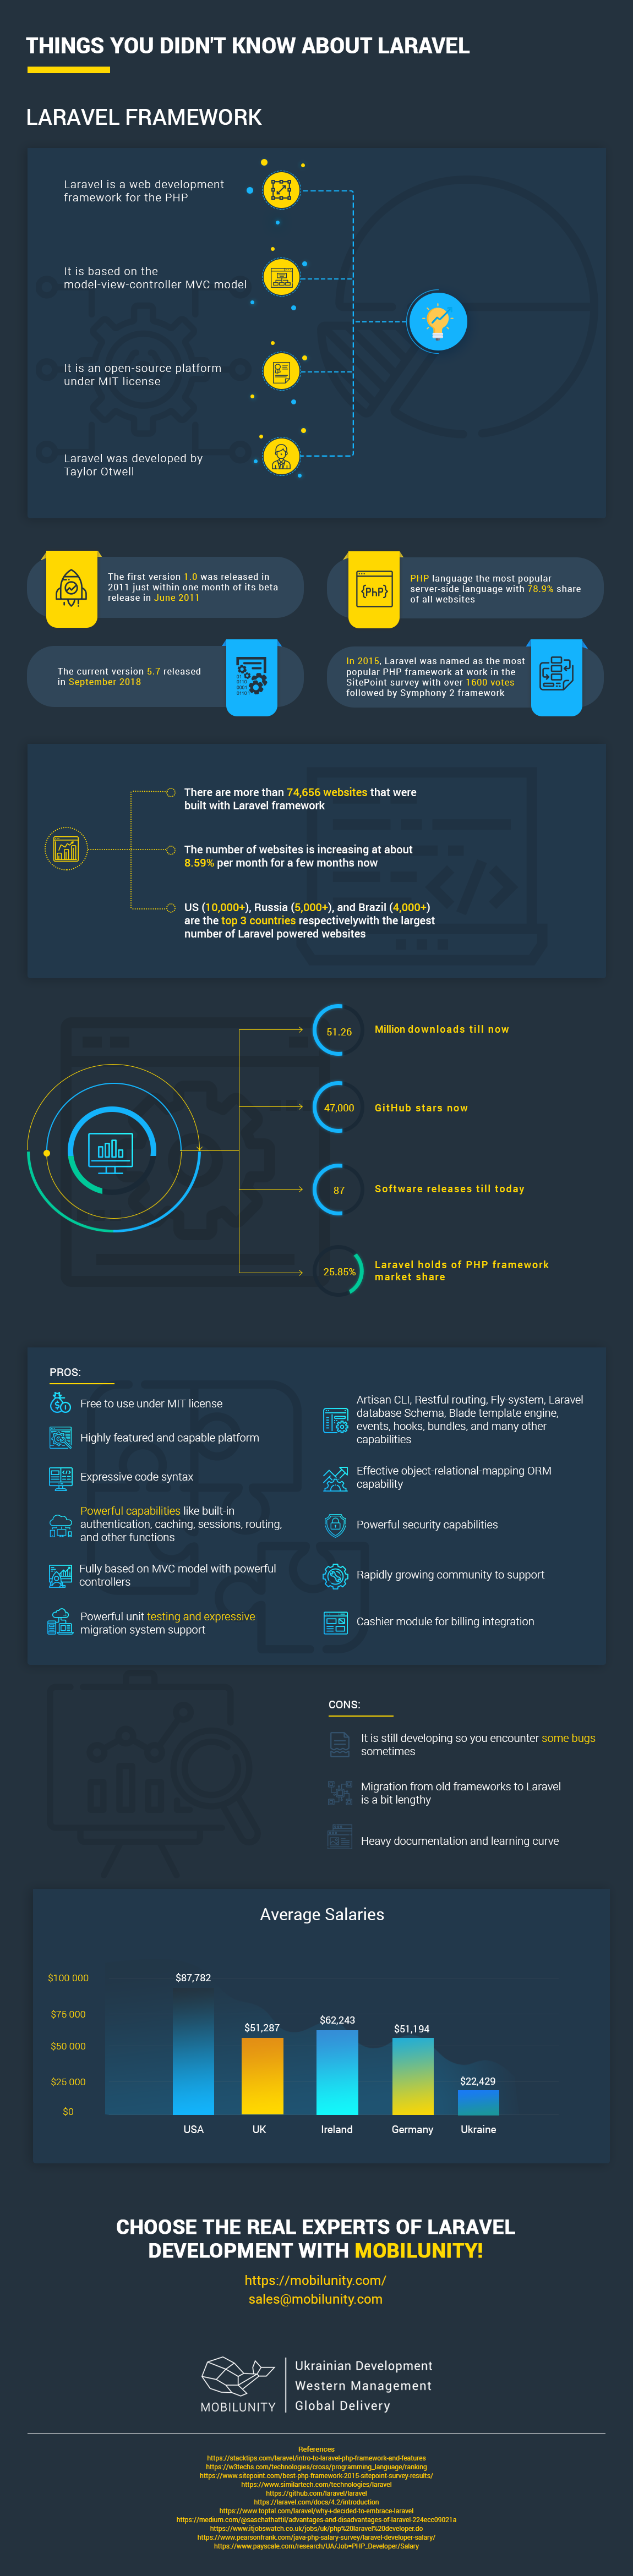 things you didn't know about laravel development infographic